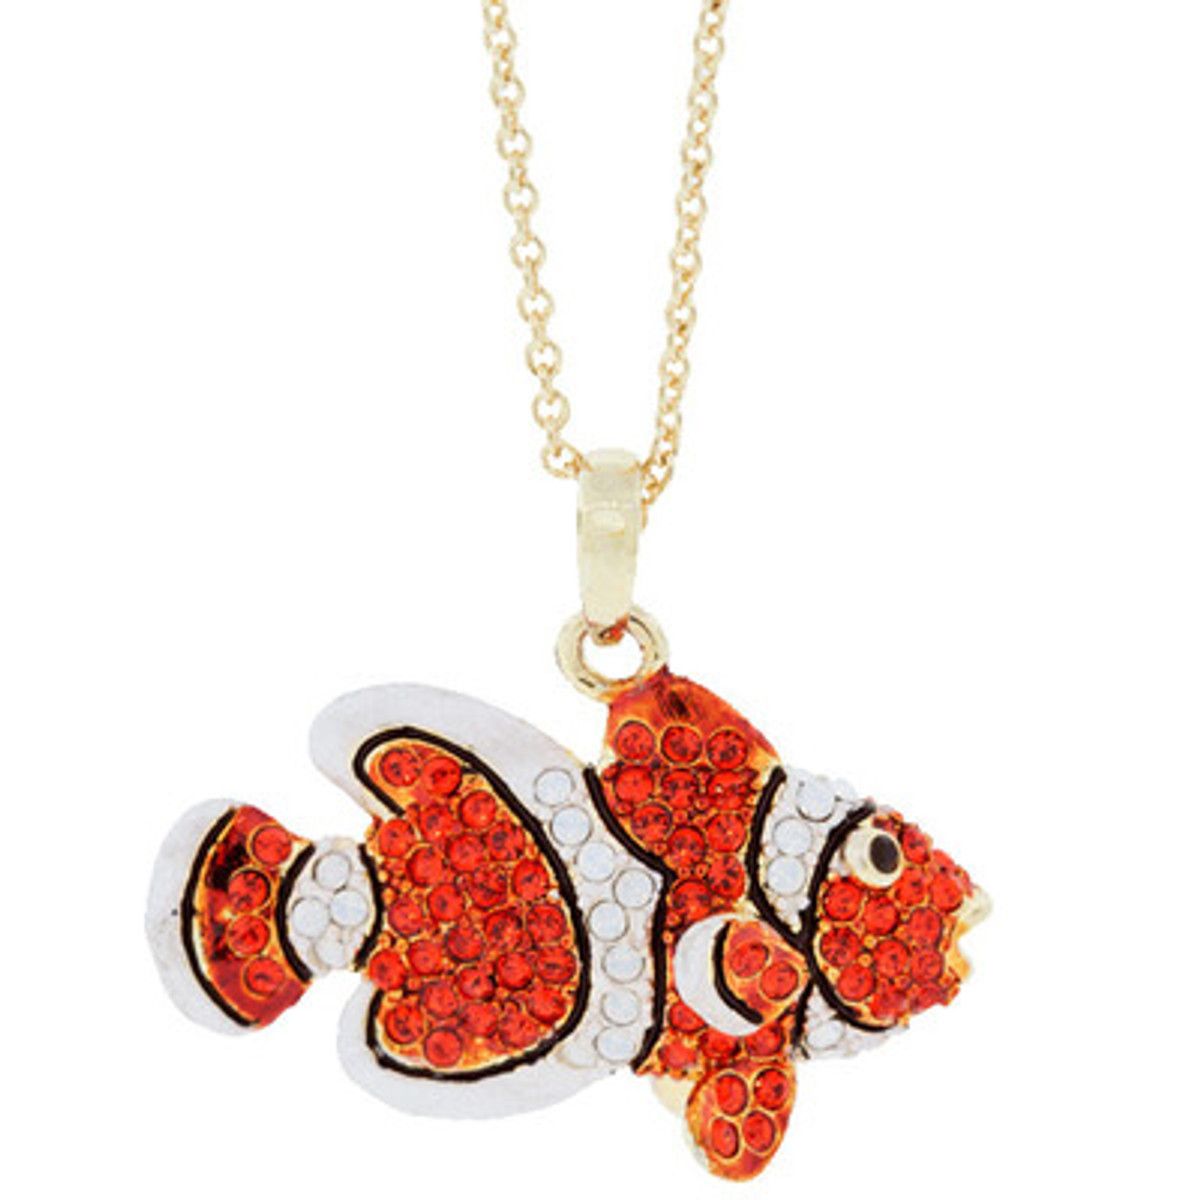 A Unique Clownfish Necklace Orange Necklace From Andrew Hamilton Crawford Jewelry